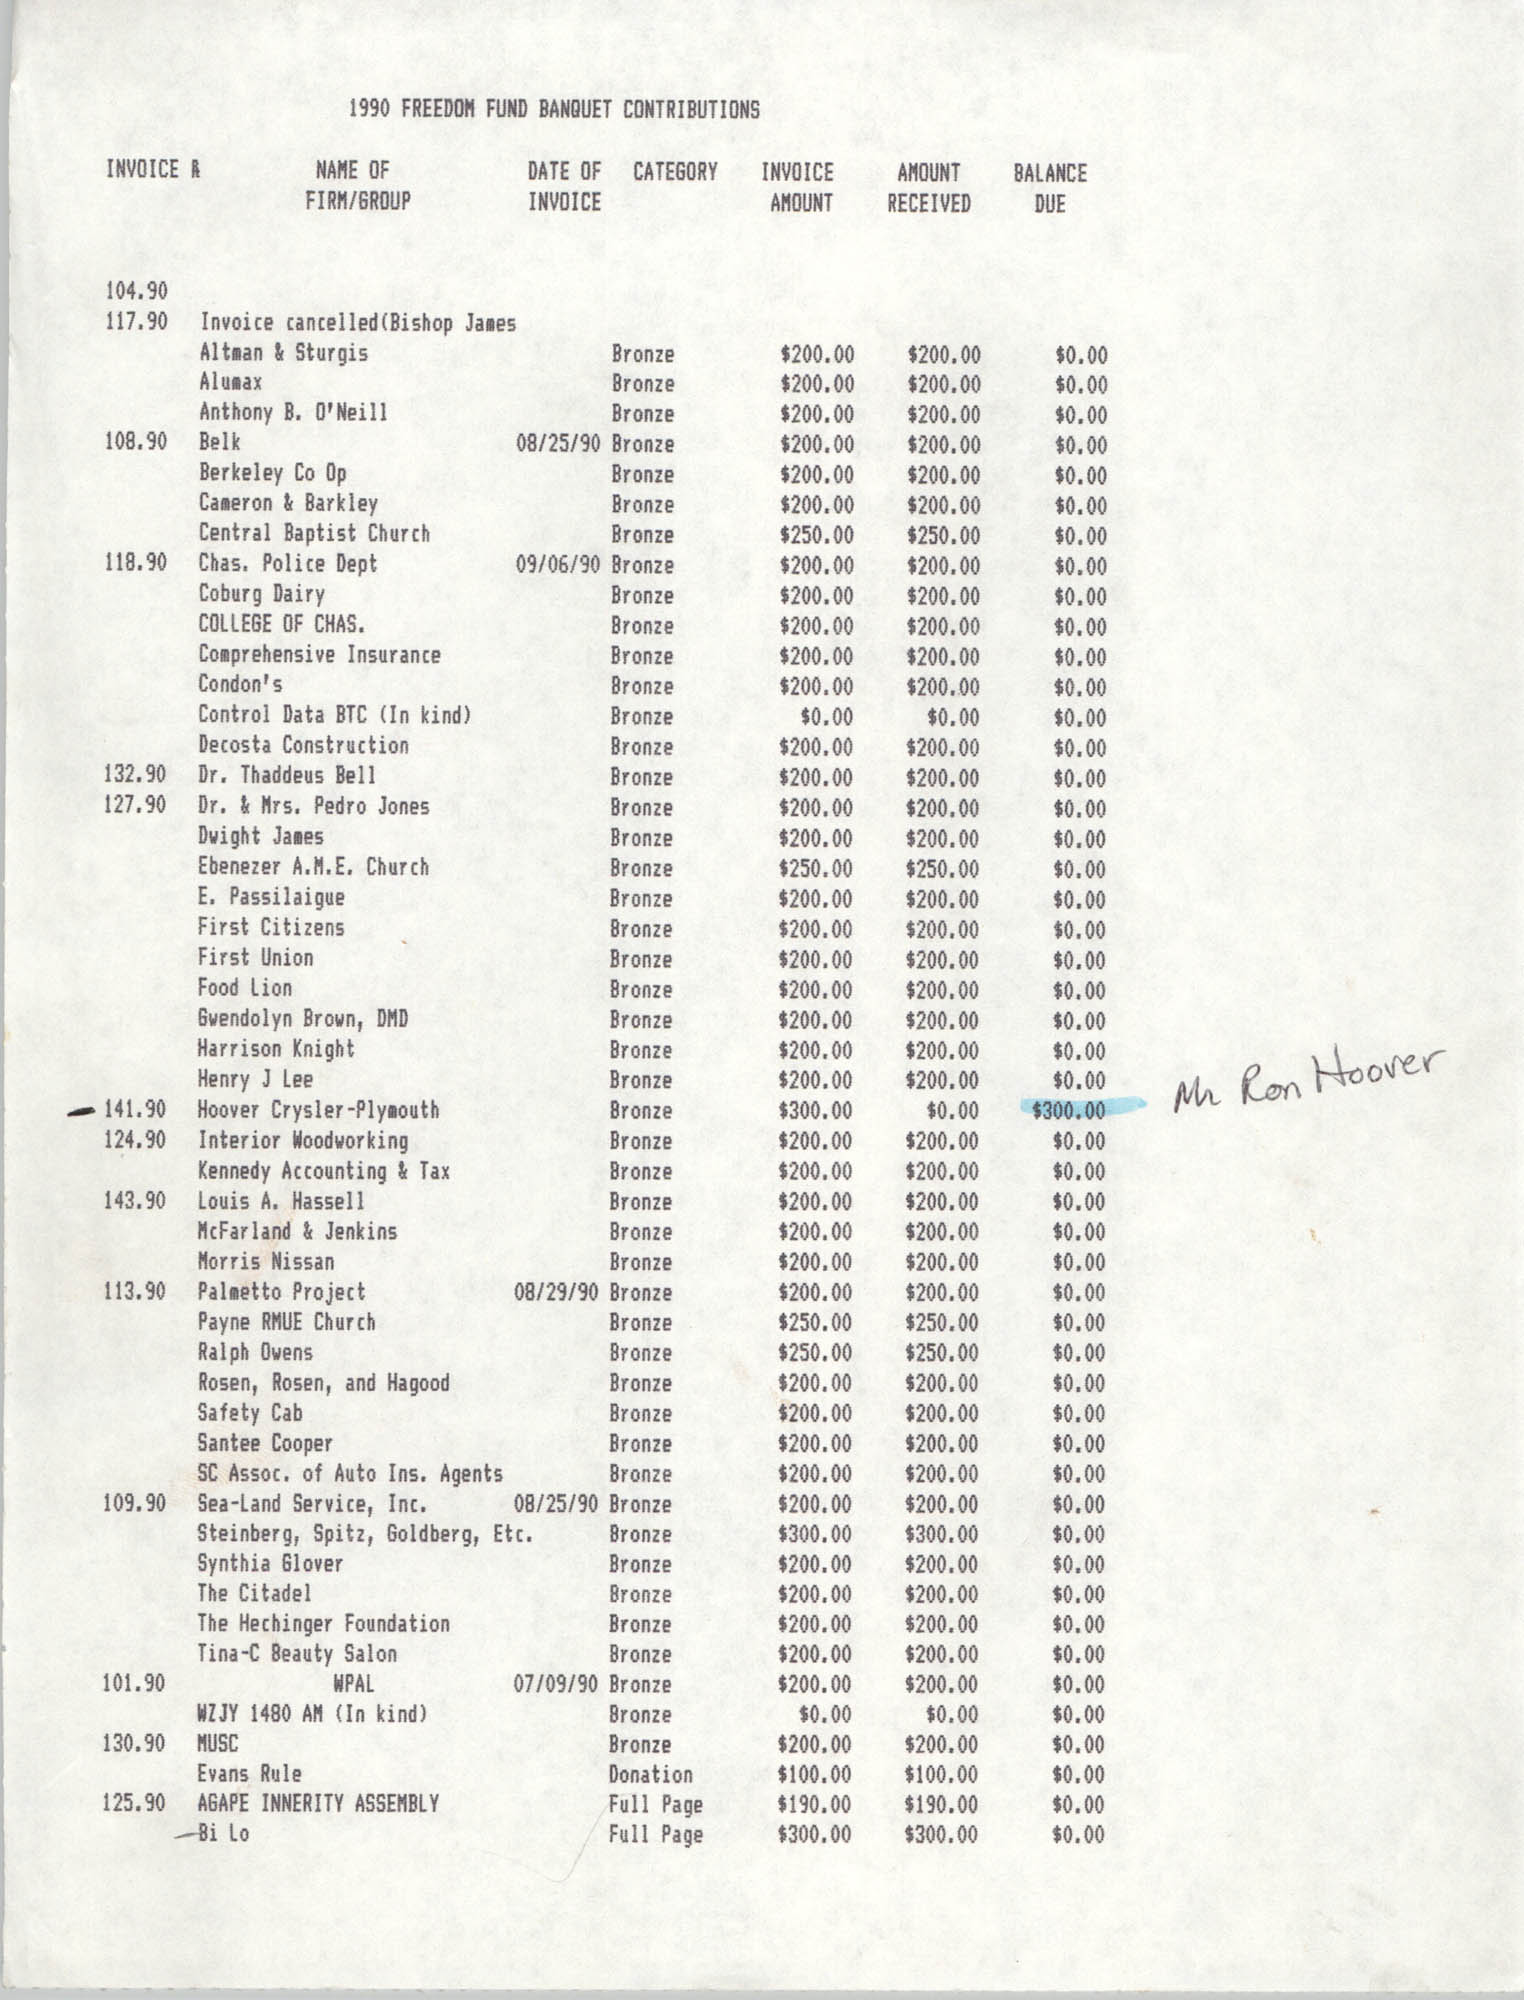 List of Contributions, 1990 Freedom Fund Banquet